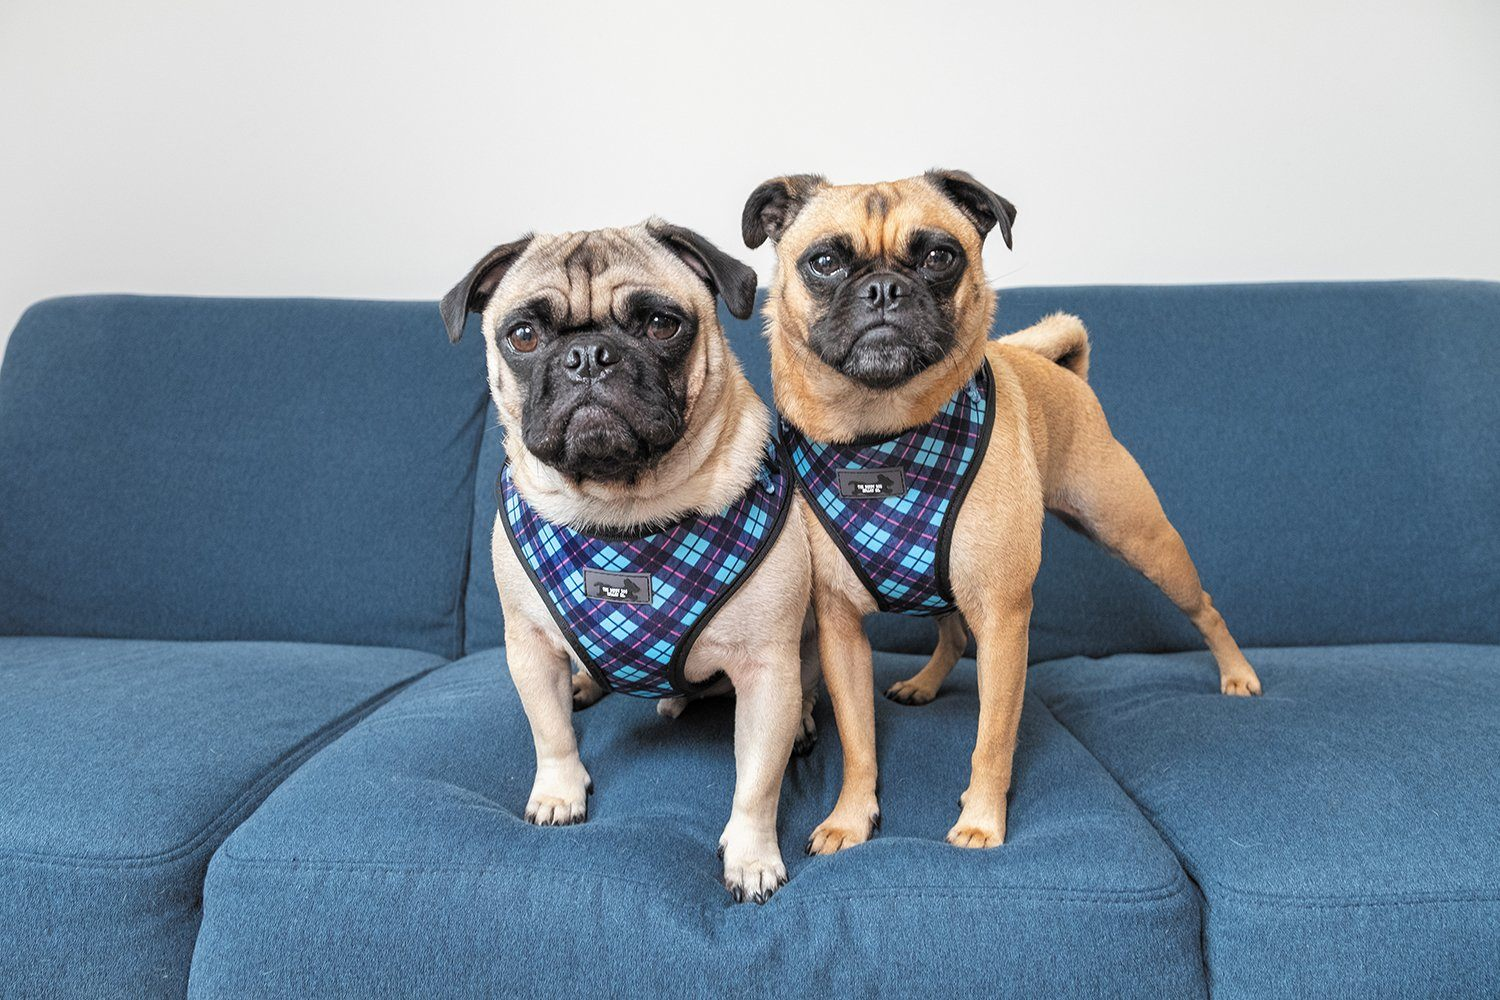 pugs in dog harness, the best dog harness for pugs, best dog harness for boston terriers